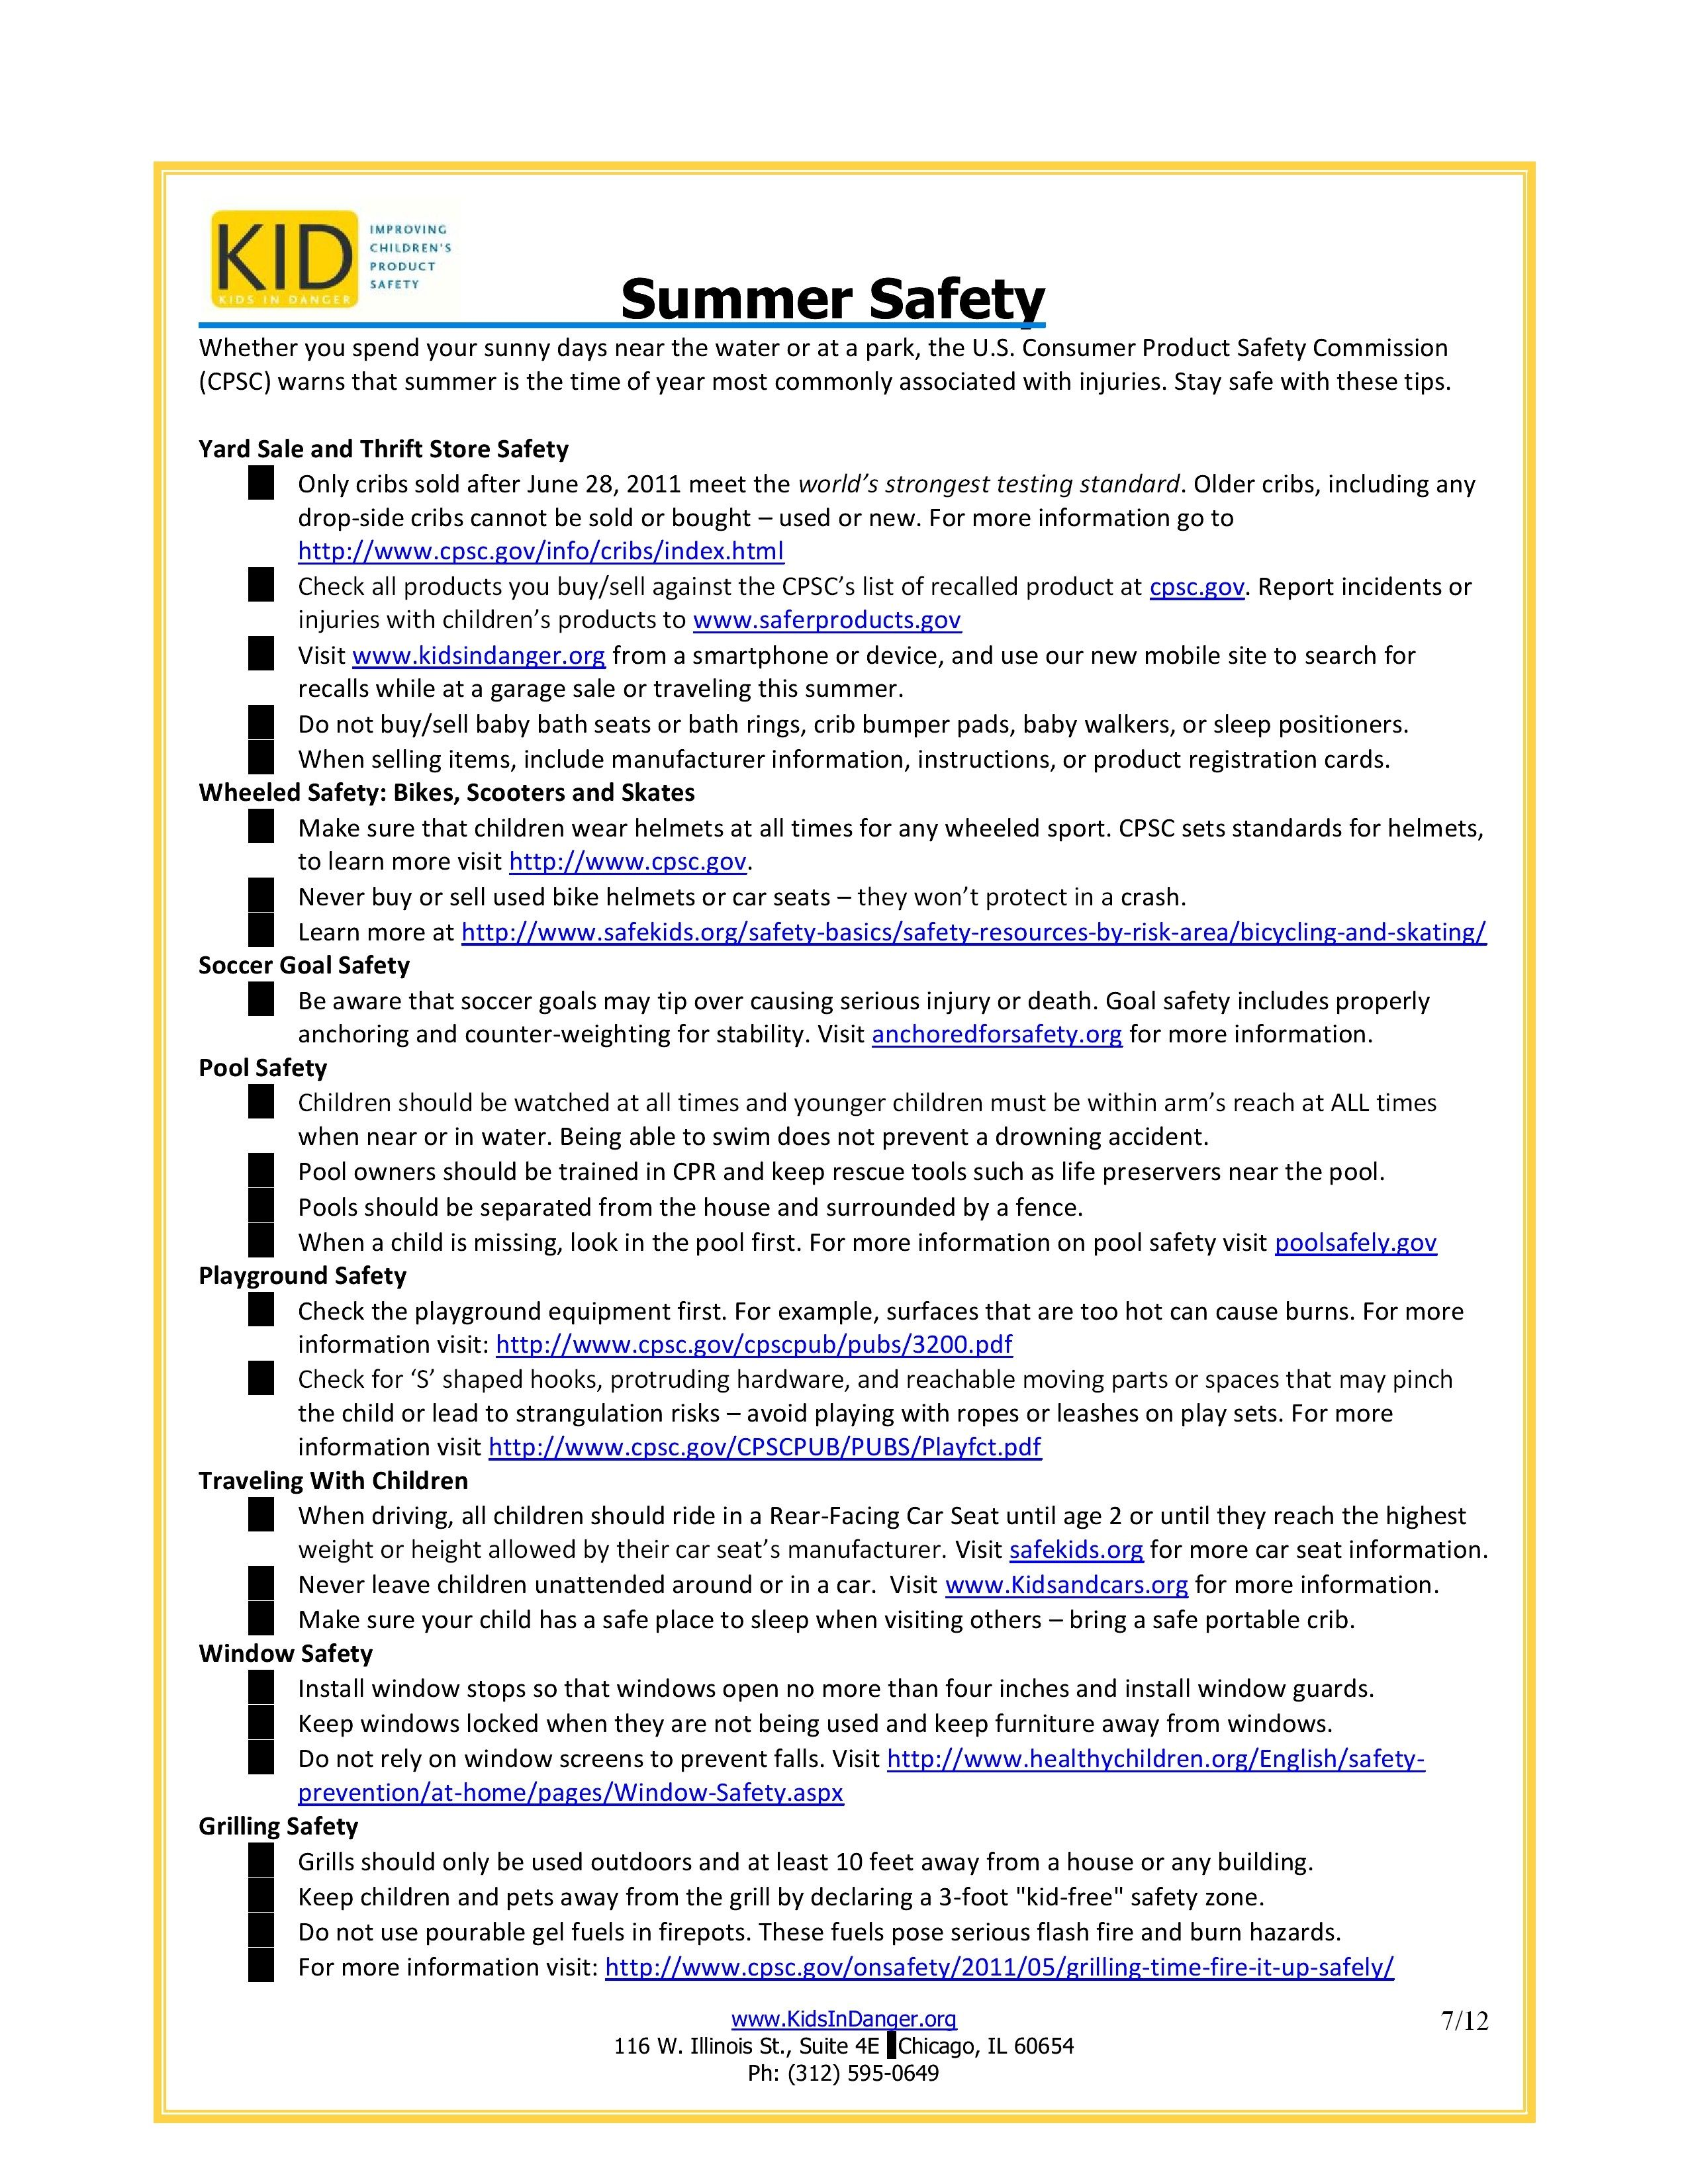 Stay safe this summer with these tips http//www